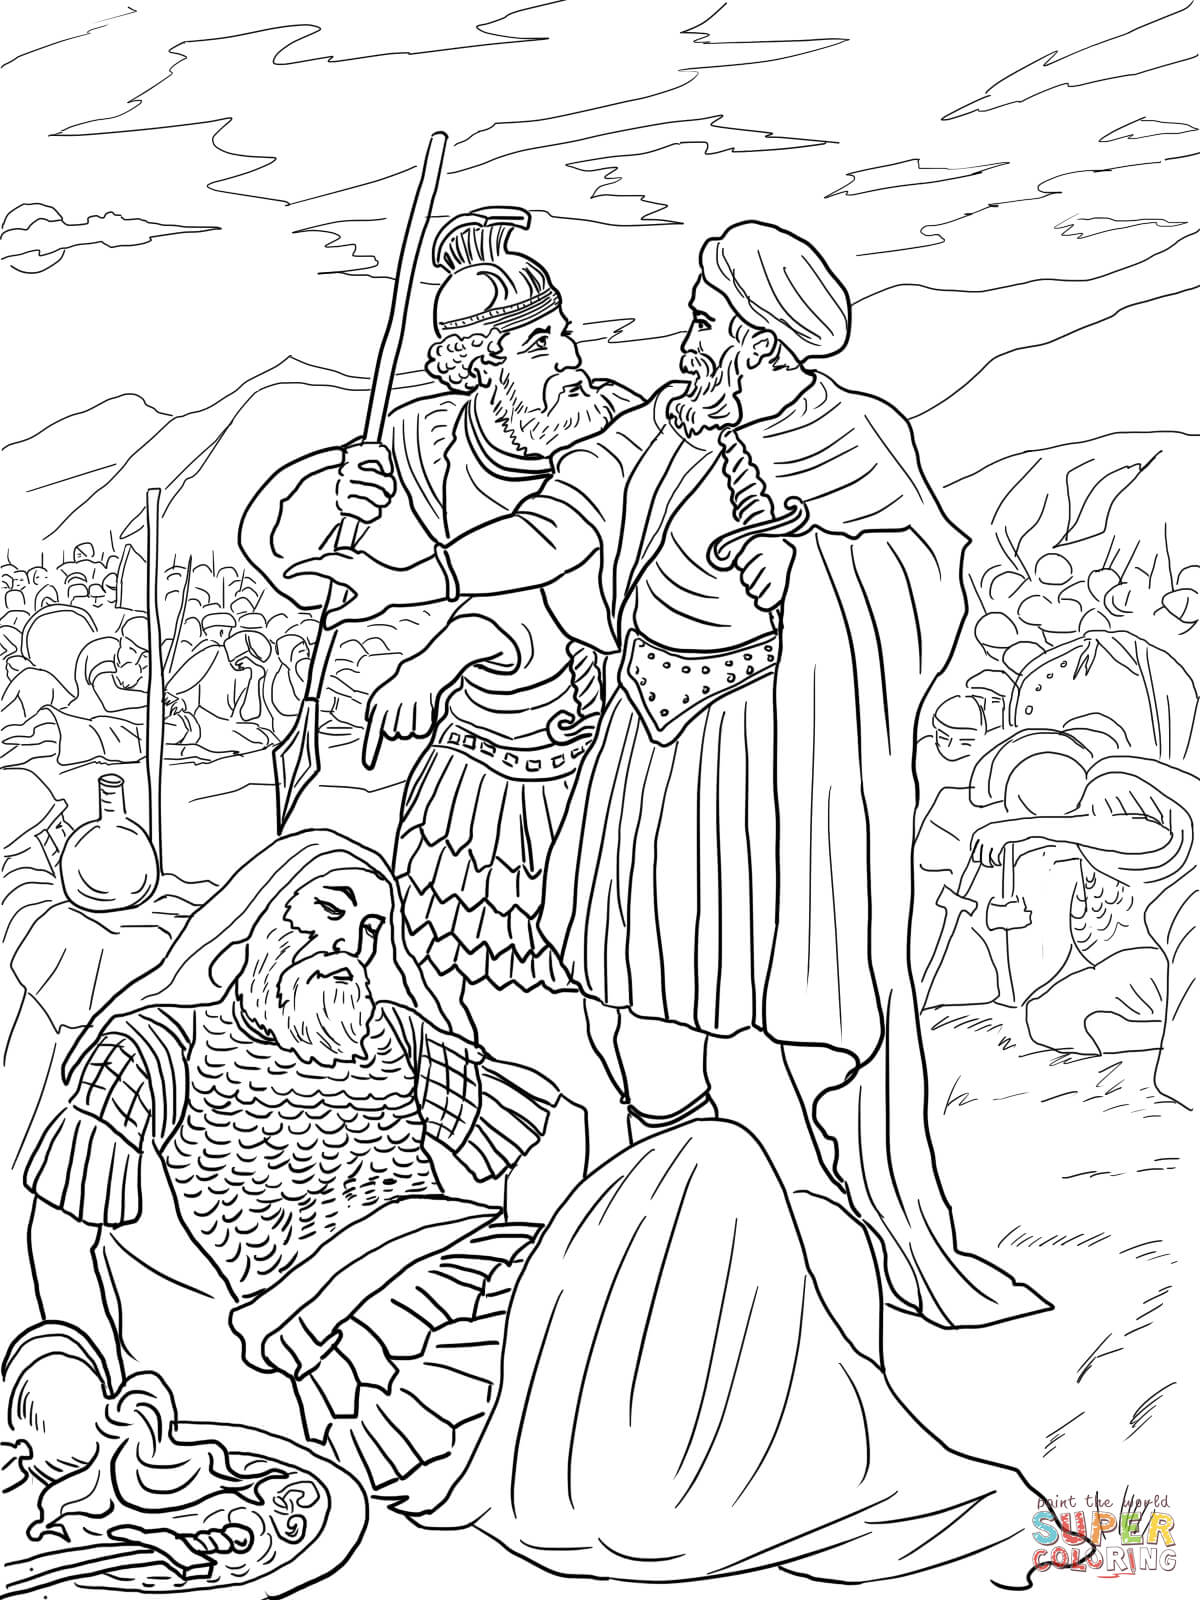 David Spares King Saul Coloring Page